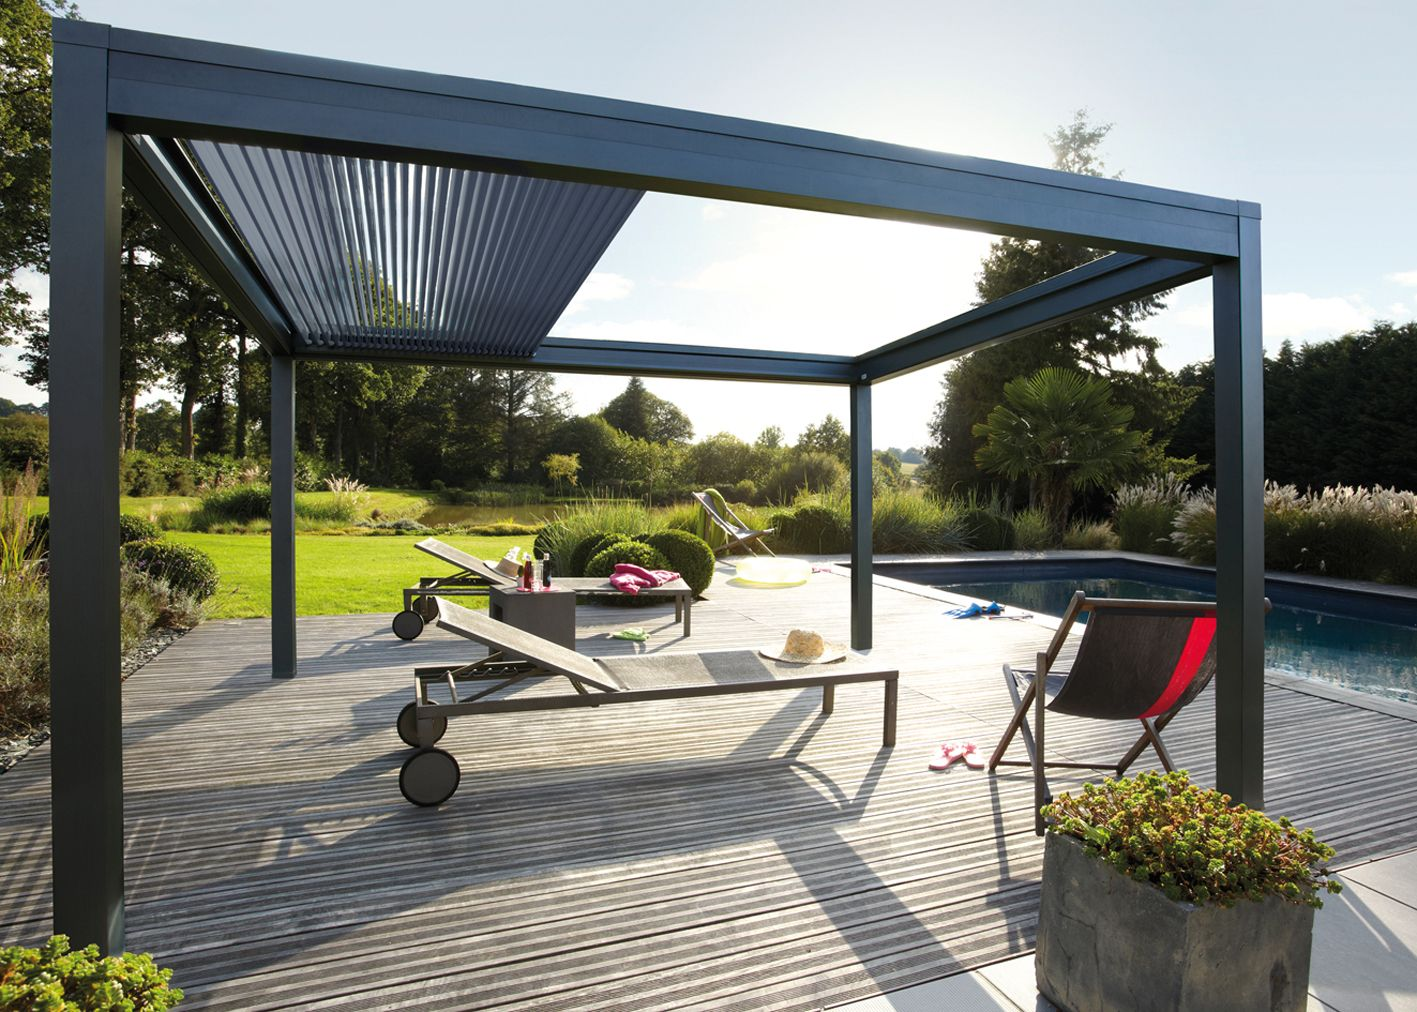 Pergola bioclimatique retractable pergoklim de soliso innovation